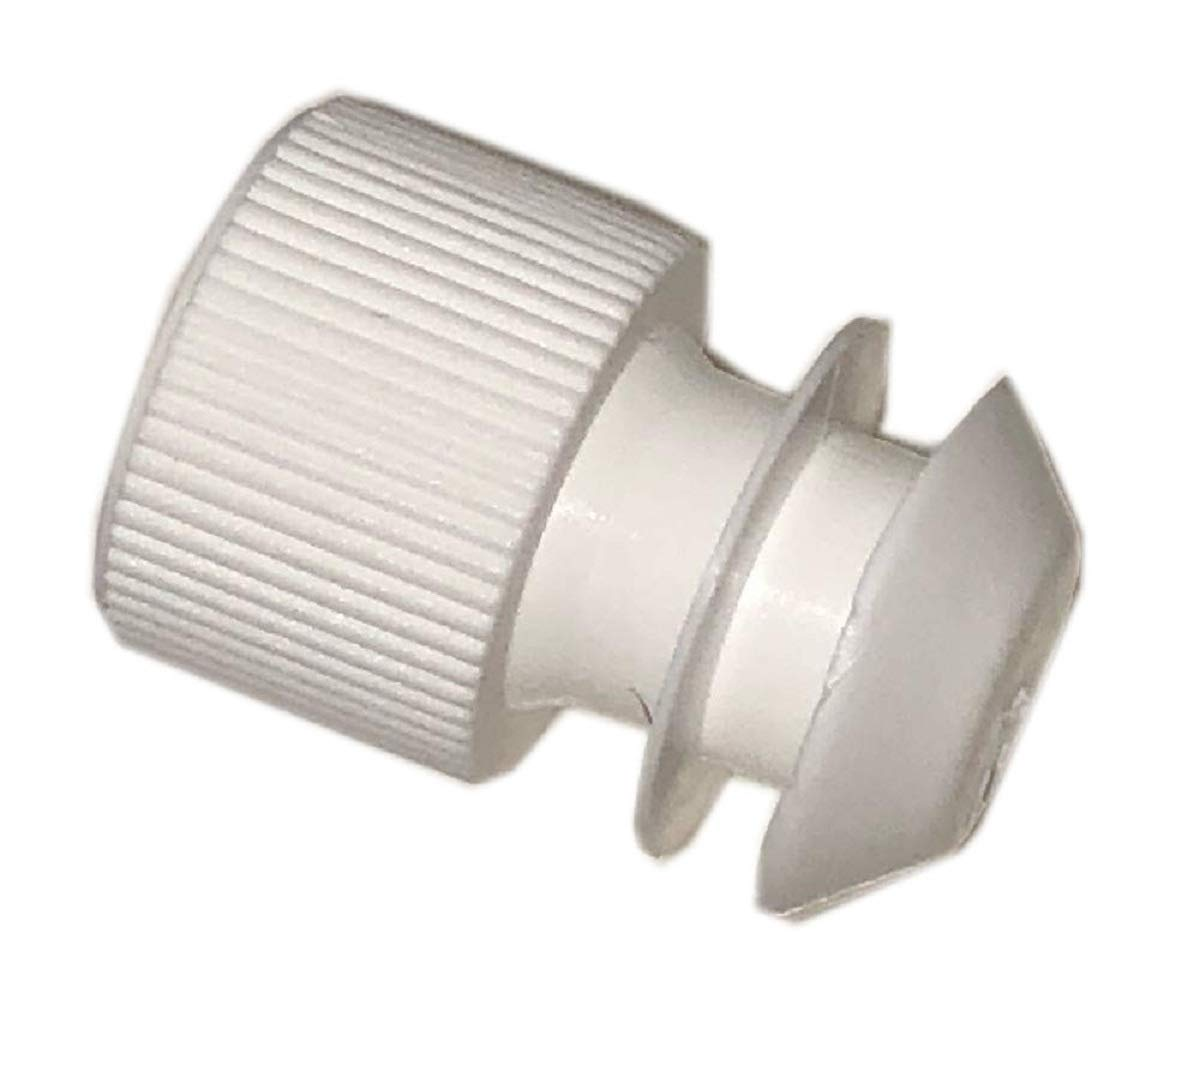 White Winged Stoppers to fit 15-16mm provette, 100